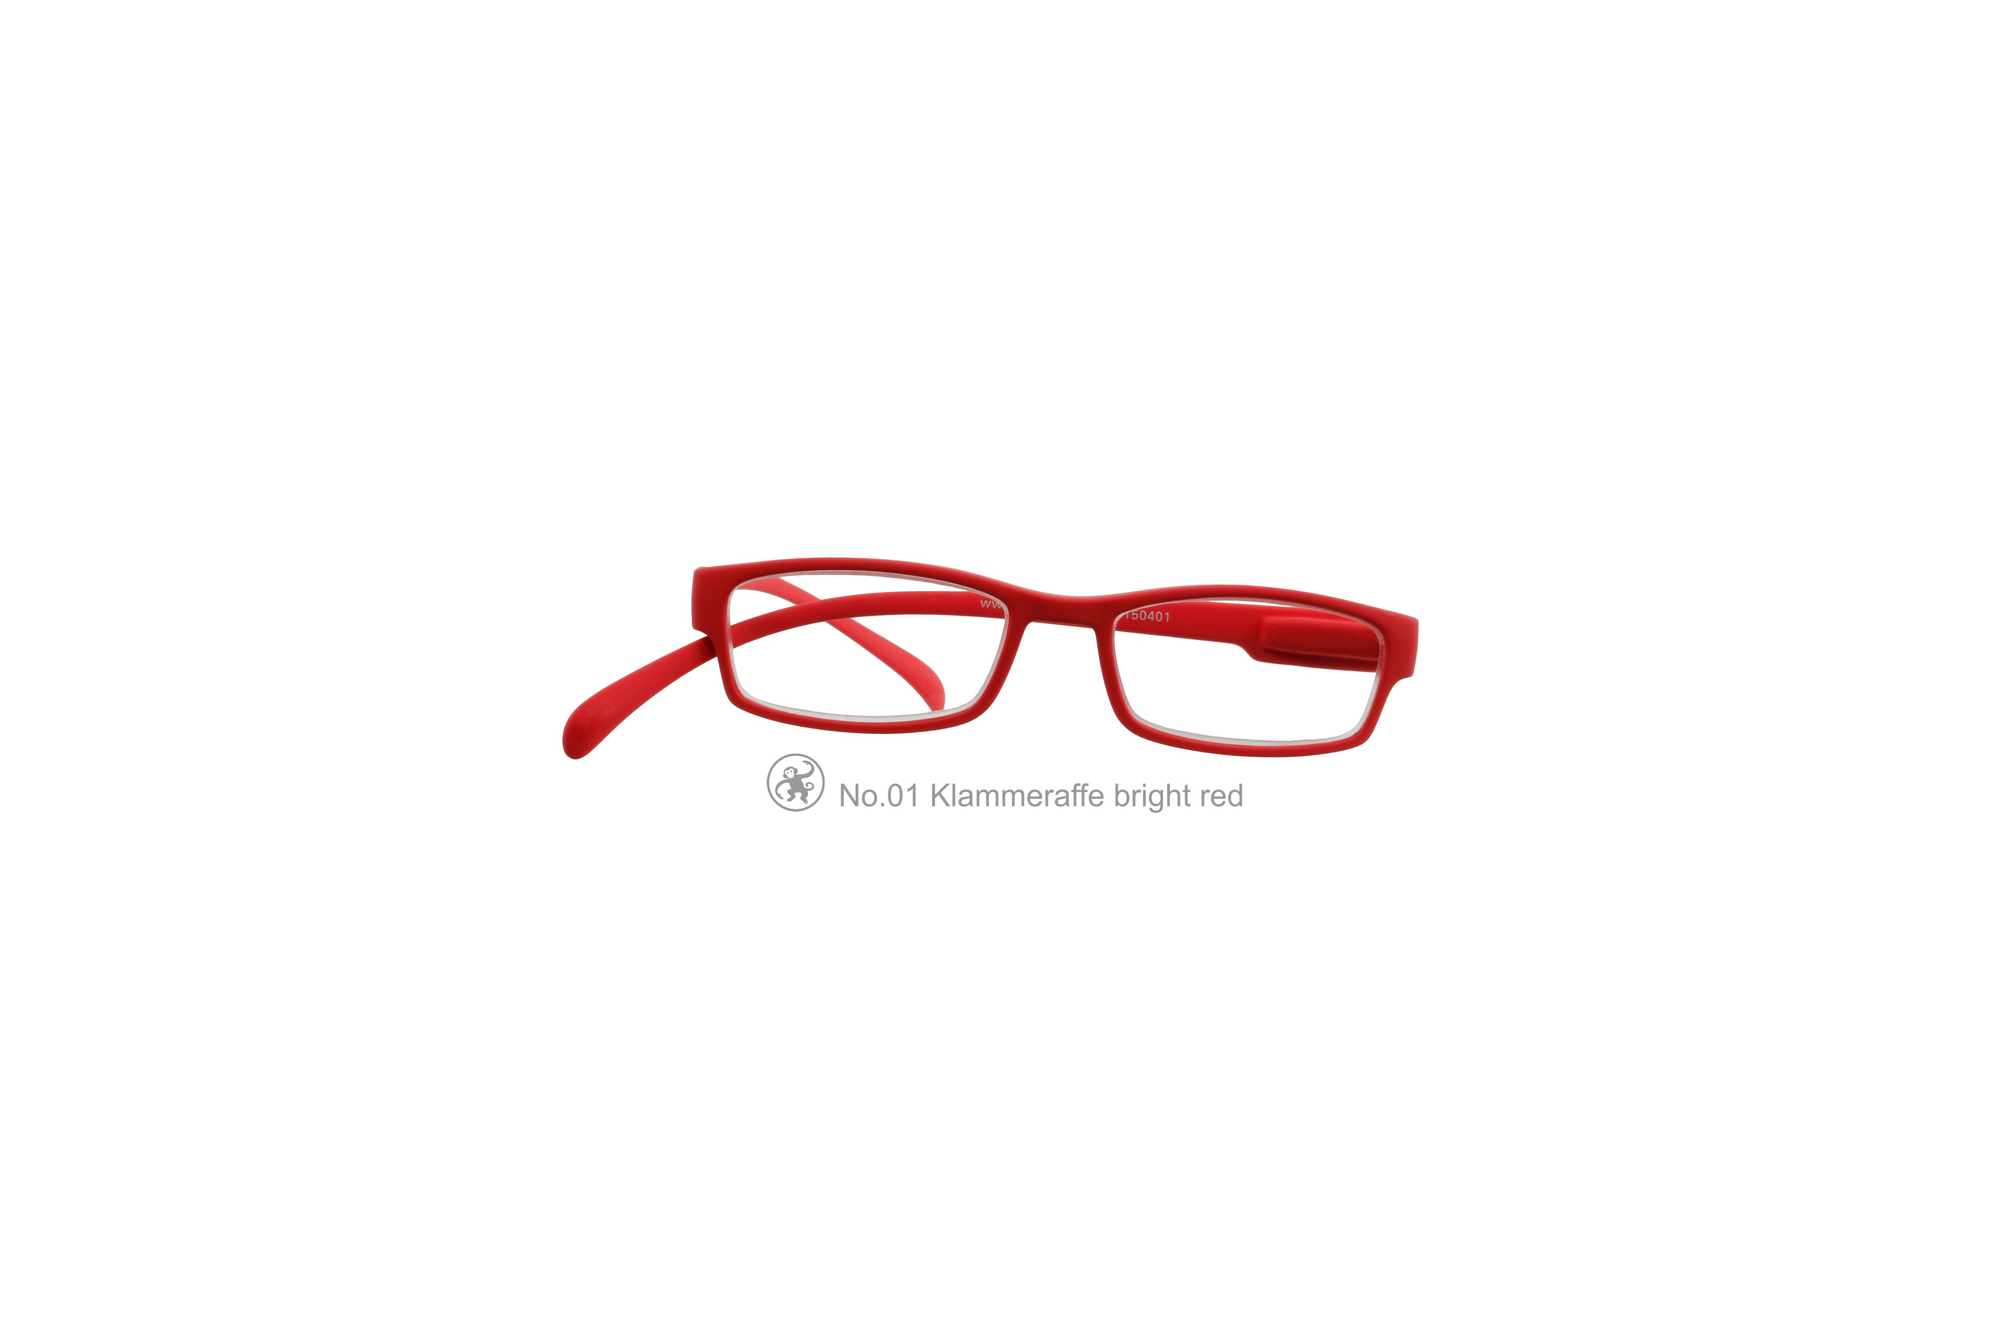 Klammeraffe Modell 01, bright red